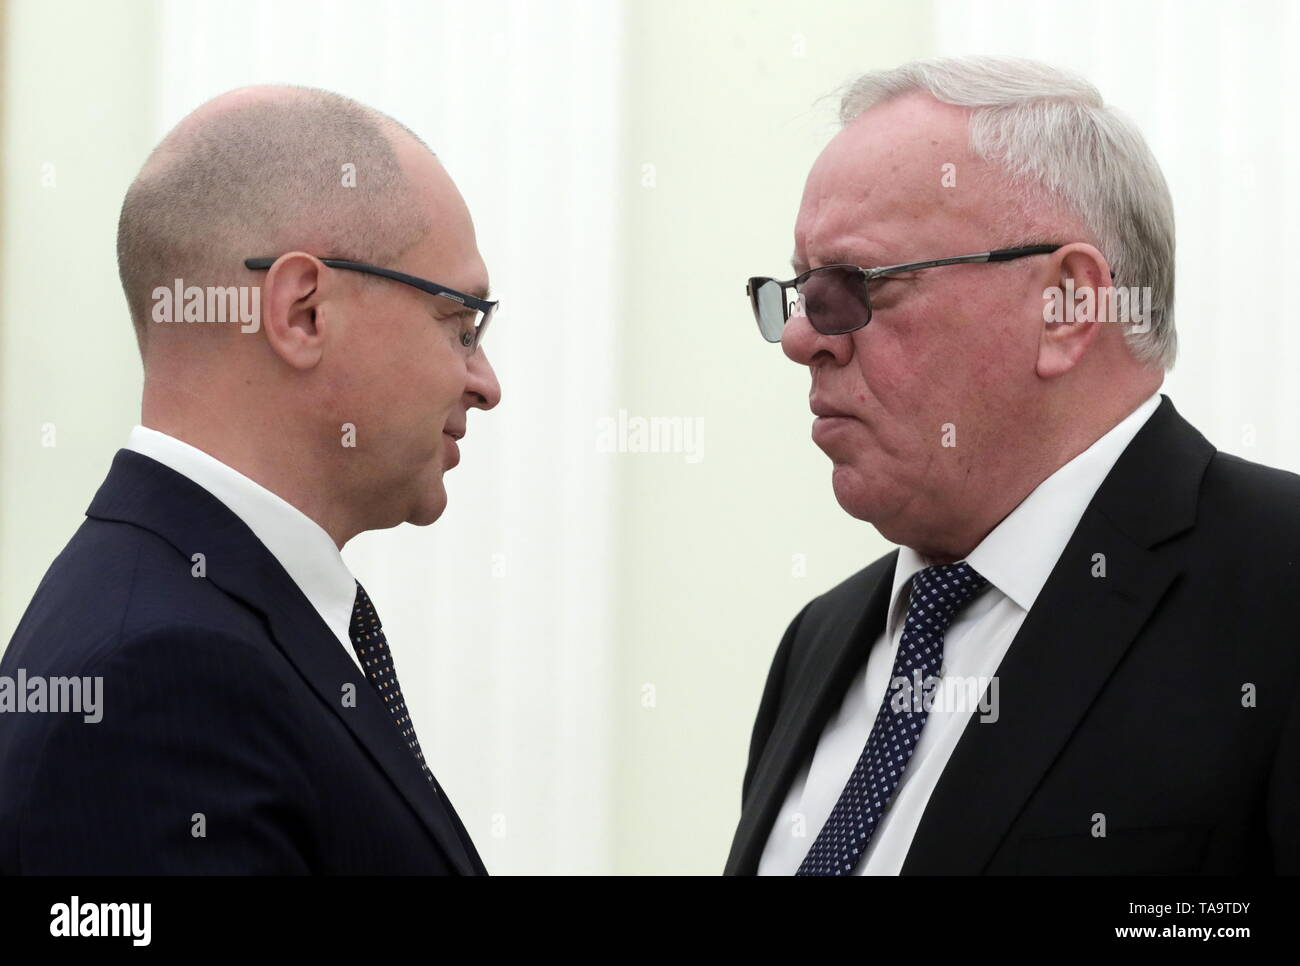 Moscow, Russia. 23rd May, 2019. MOSCOW, RUSSIA - MAY 23, 2019: First Deputy Chief of Staff of the Russian Presidential Executive Office, Sergei Kiriyenko (L) and Altai Republic Head Alexander Berdnikov during a meeting of Russia's President Vladimir Putin with former heads of Russian regions, at the Moscow Kremlin. Mikhail Metzel/TASS Credit: ITAR-TASS News Agency/Alamy Live News - Stock Image